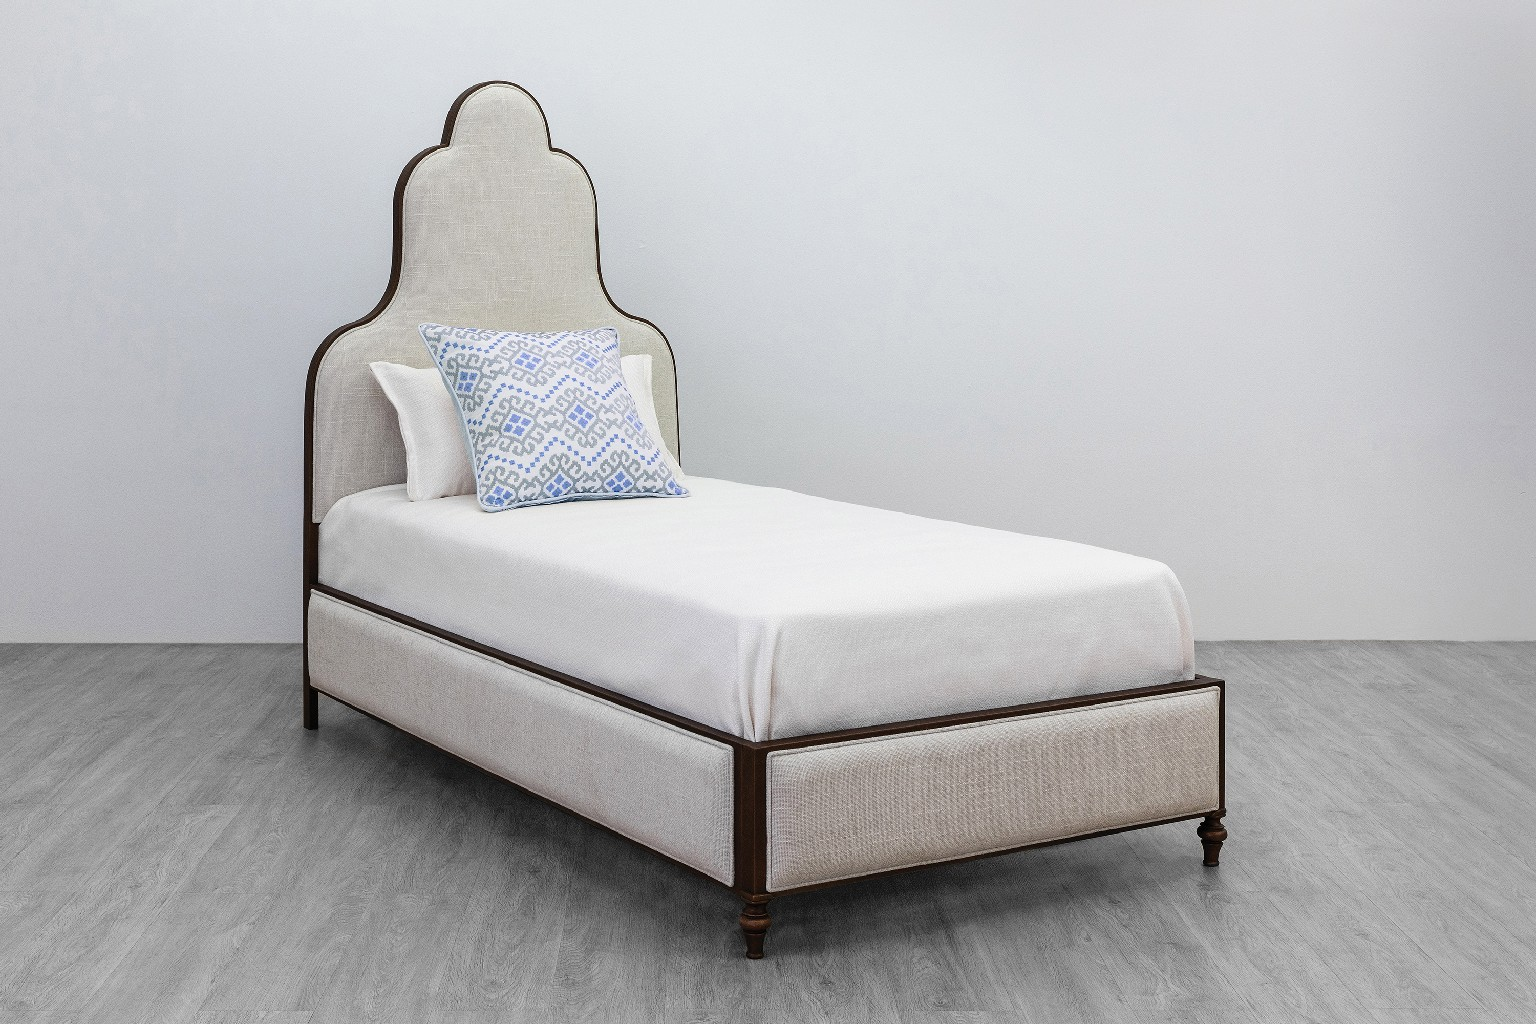 Taylor Gray Home Furniture Platform Bed Headboard Photo